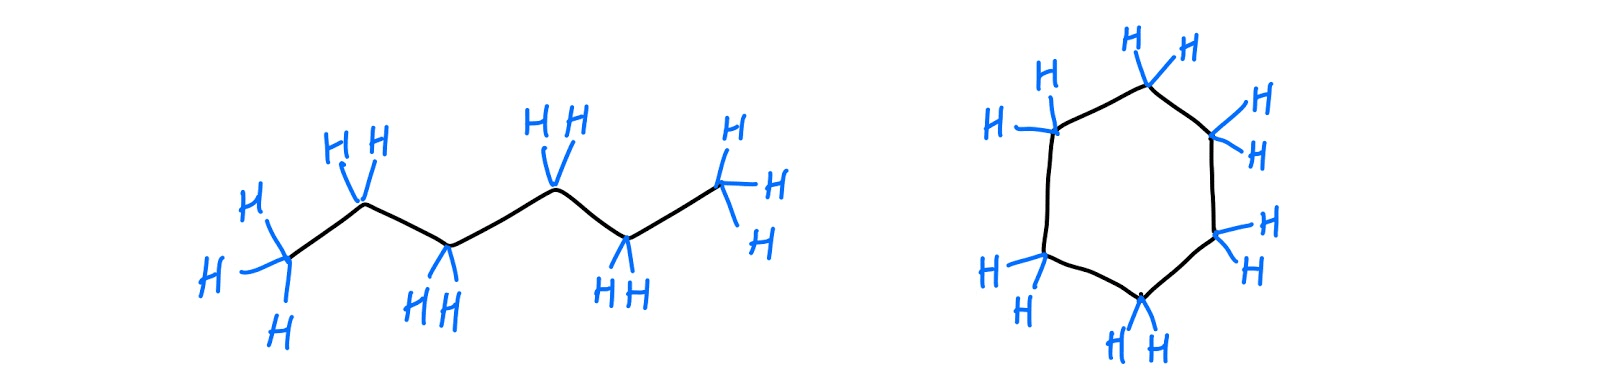 hexane (left) and cyclohexane (right)